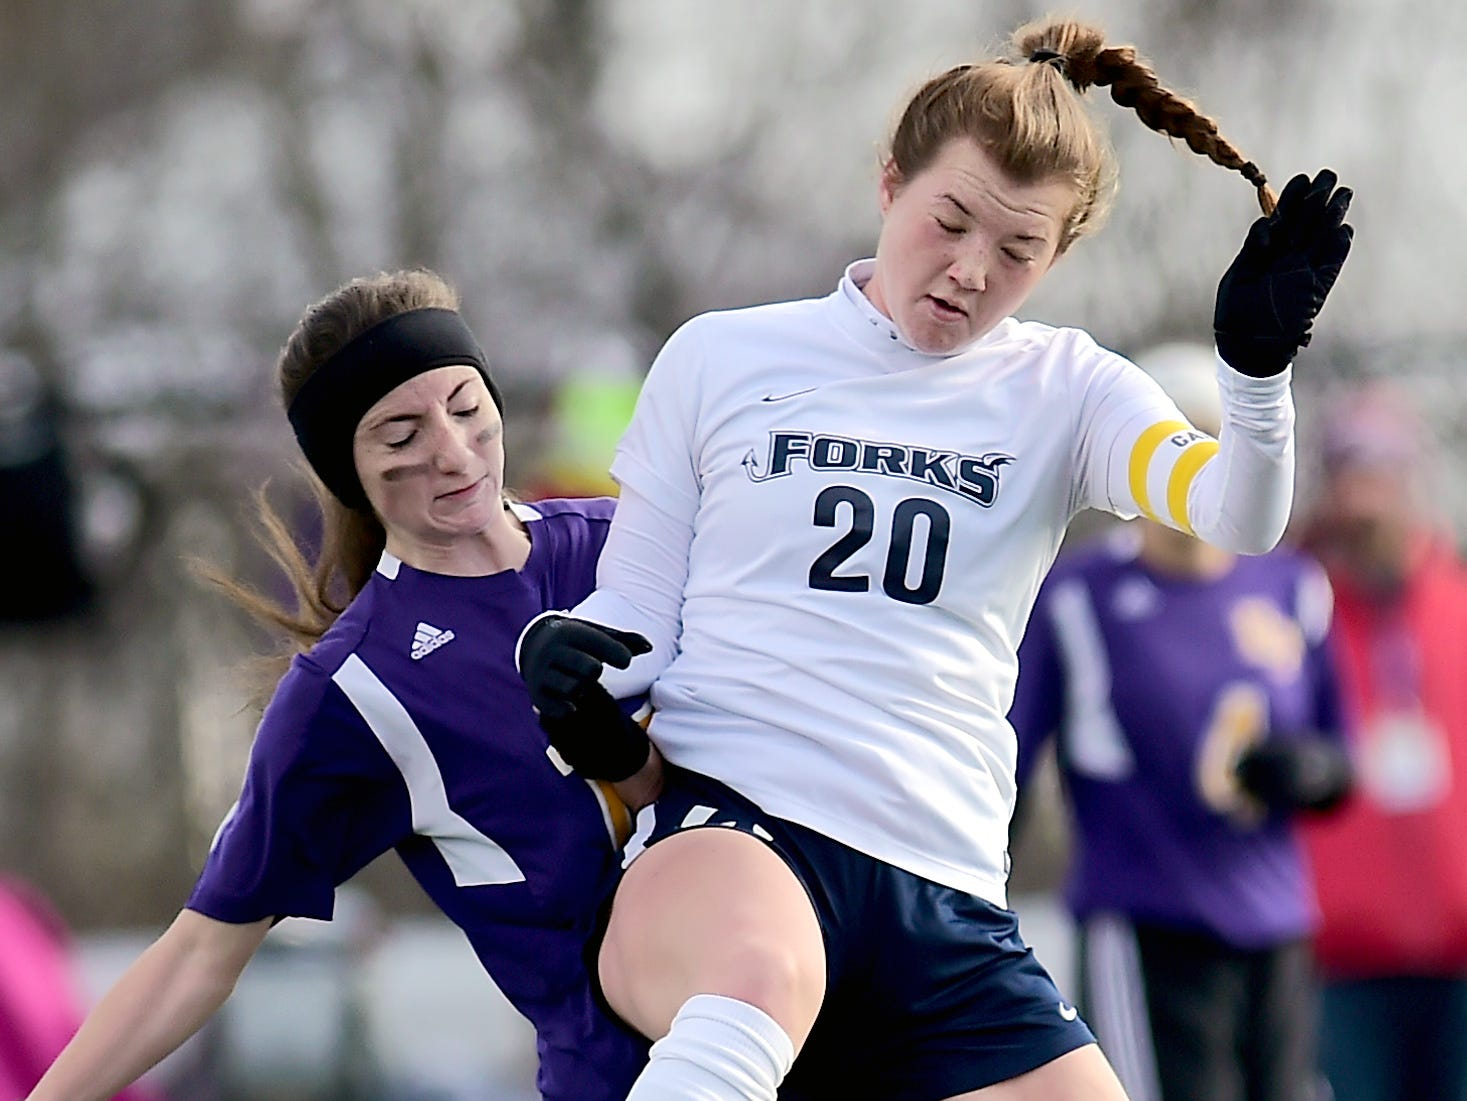 Holland Patent's Samantha Buley (17) and Chenango Fork's Emma Bough (20) battle for the ball during Chenango Forks vs. Holland Patent, Class B NYSPHSAA Girls Soccer Championship , Cortland High School, Cortland, NY. Sunday, November 11, 2018.